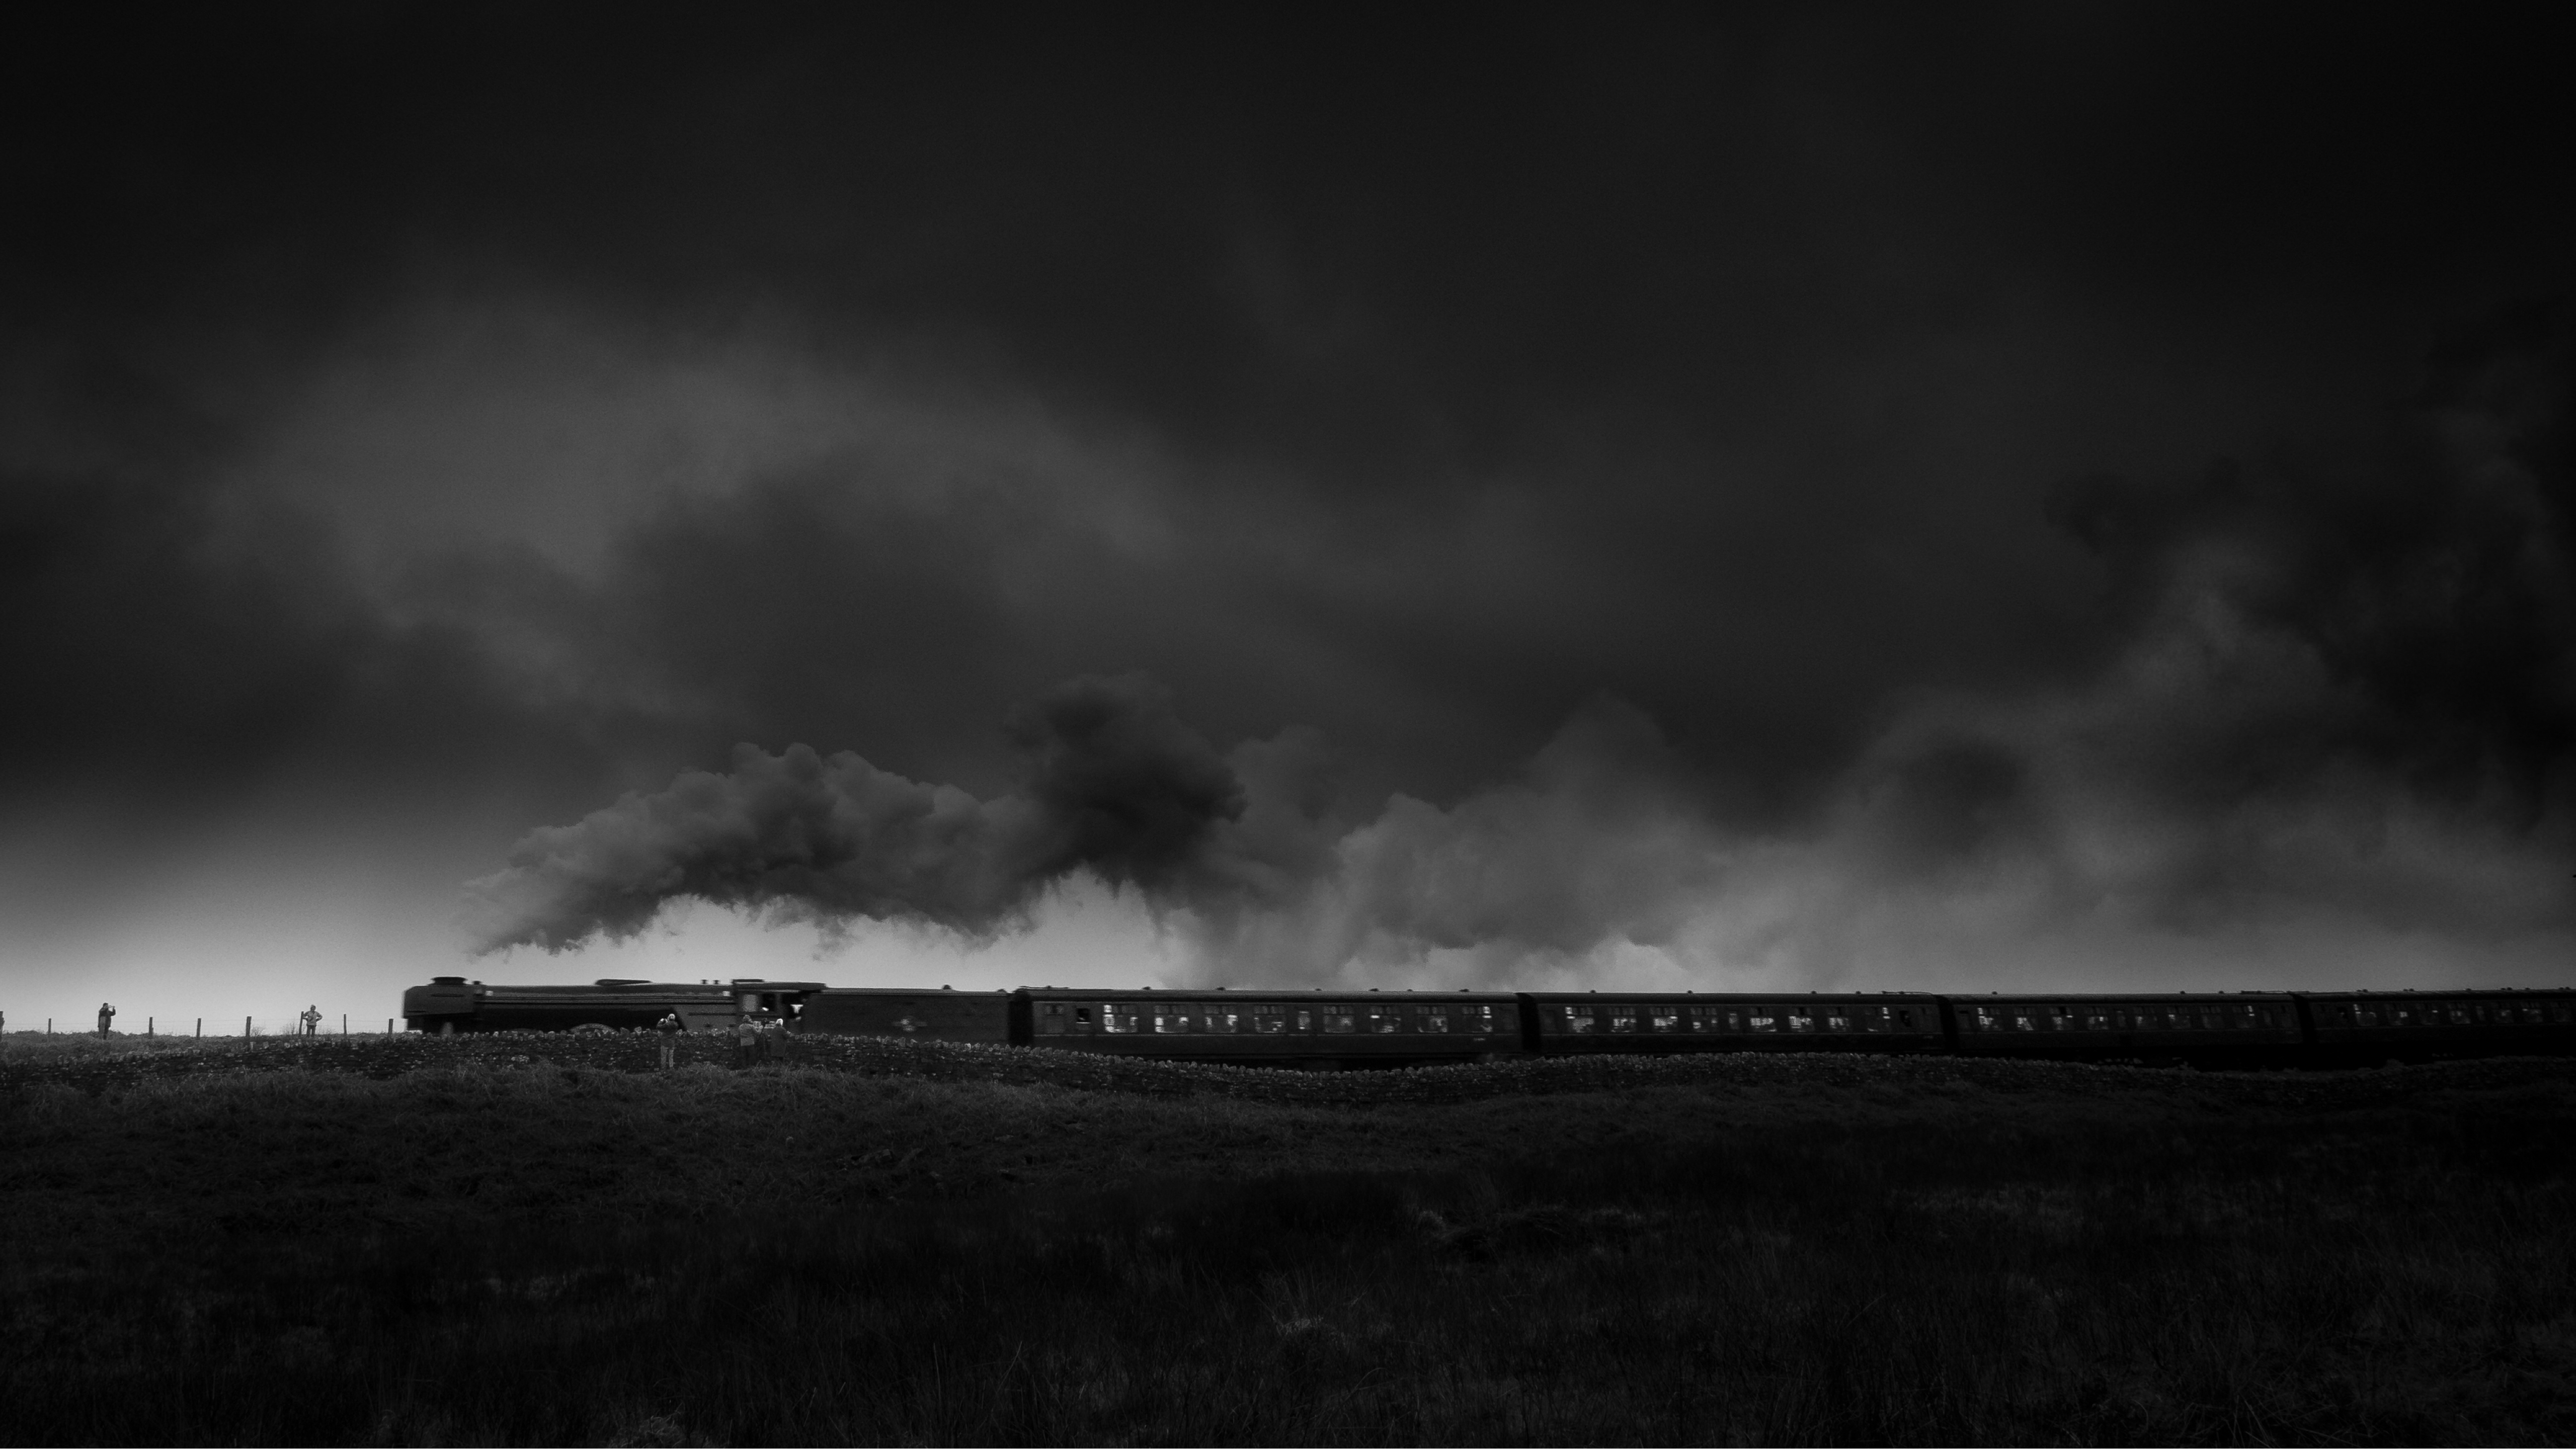 The Flying Scotsman in the North York Moors black and white image